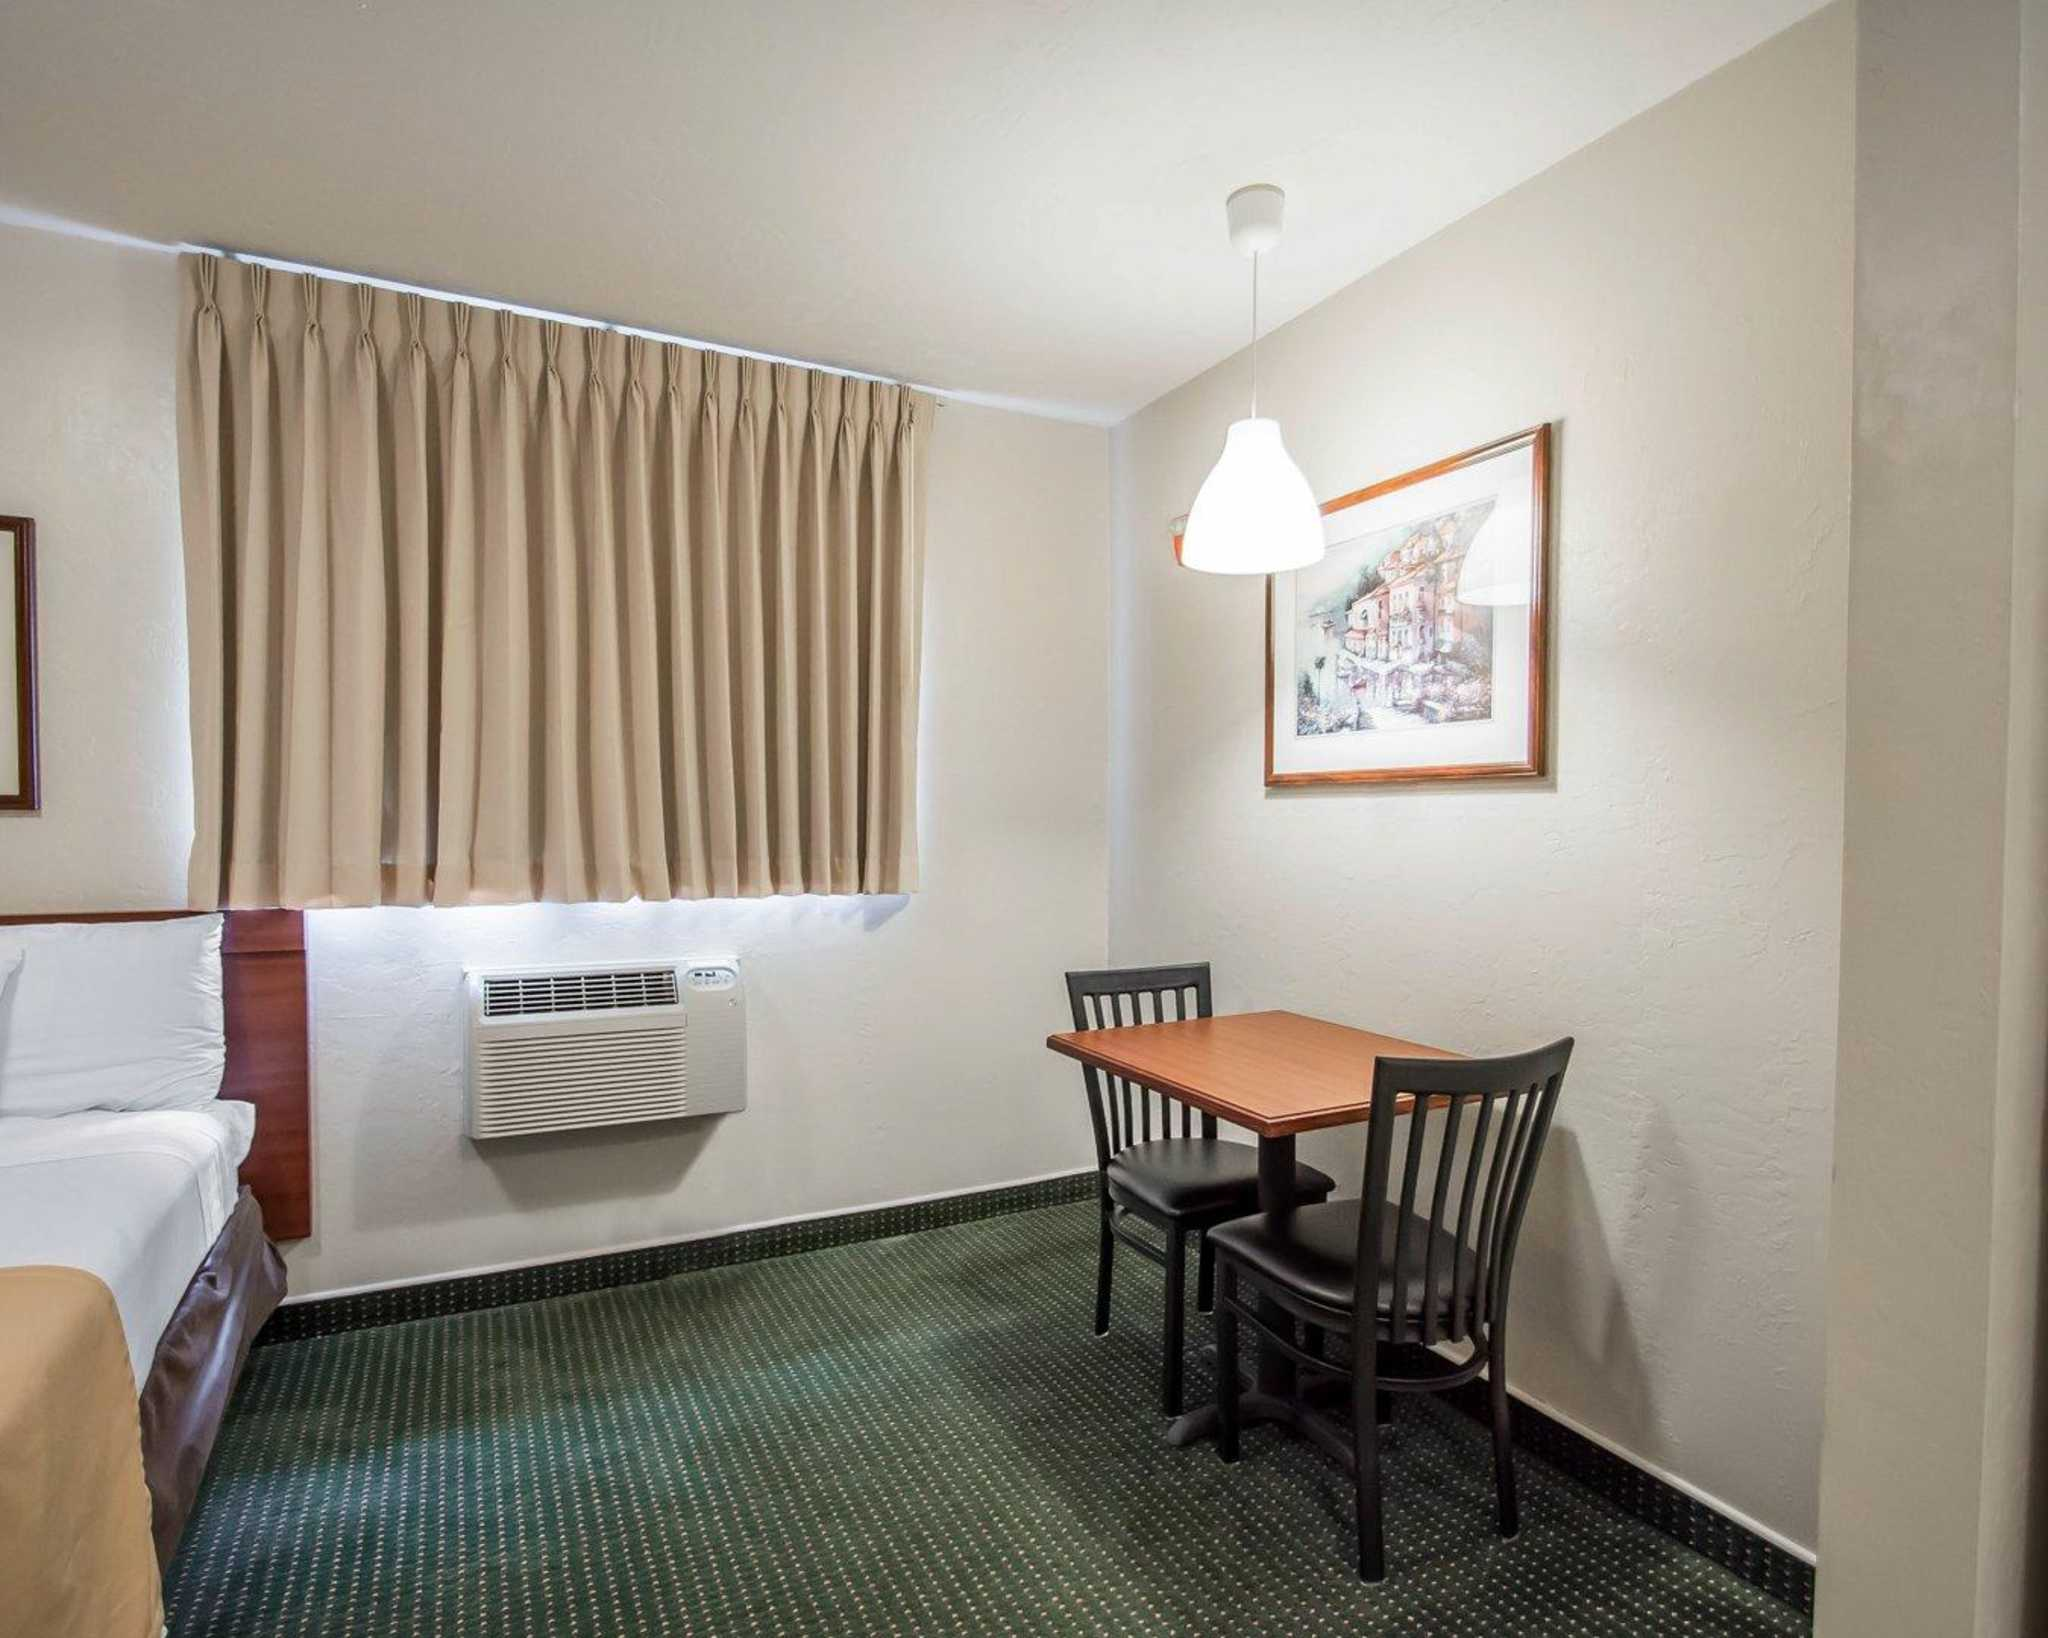 Suburban Extended Stay Hotel image 6